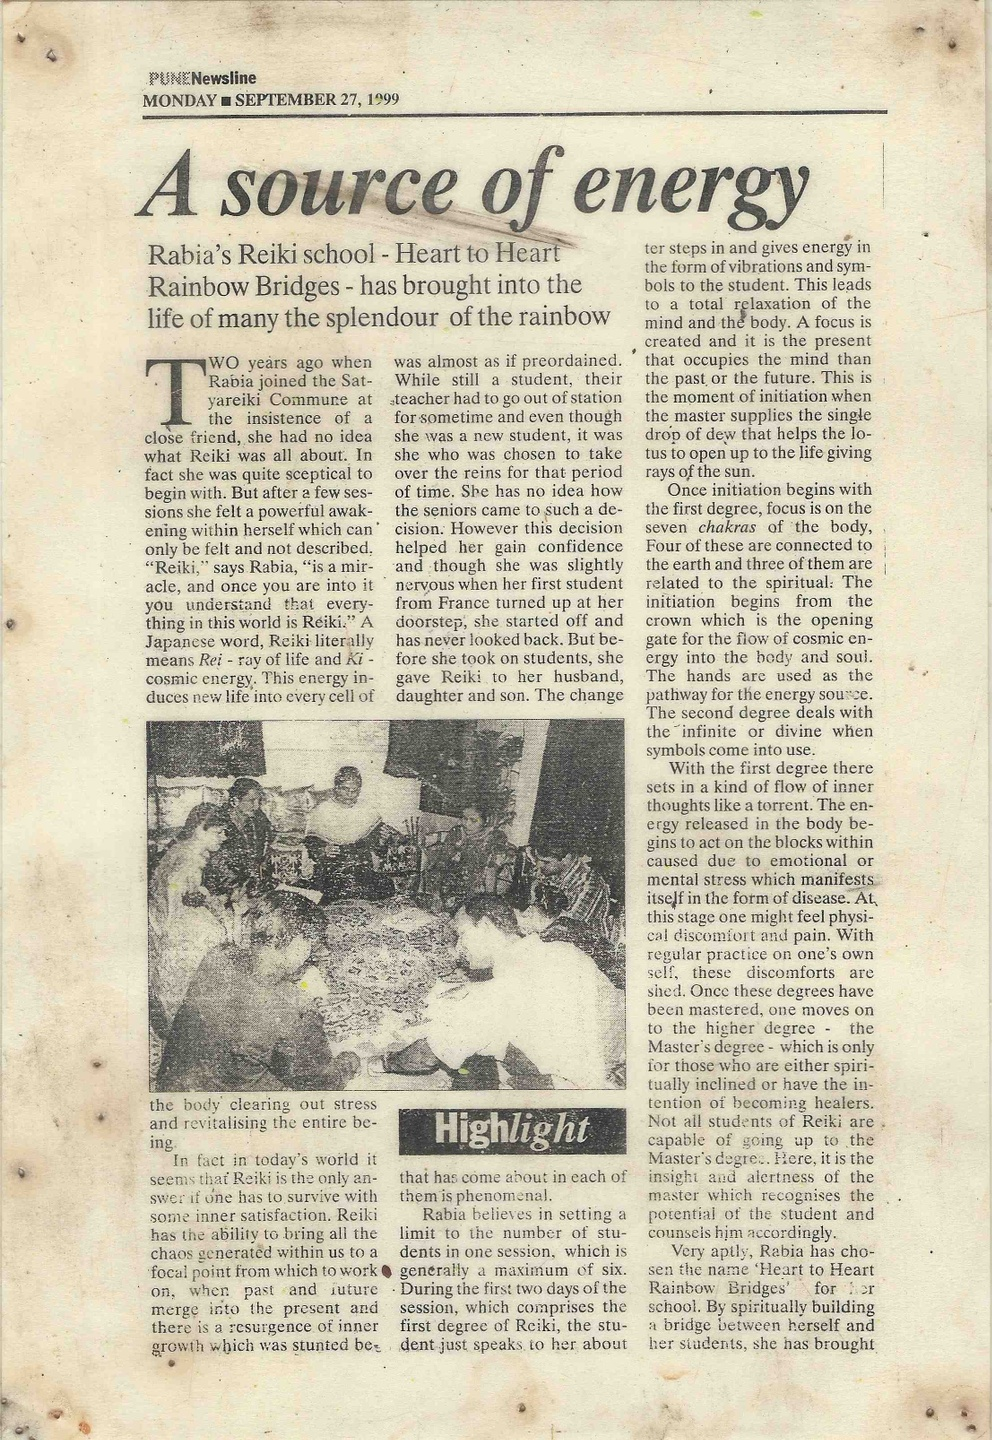 Mother Rabiya enlightened Mystic and Dynamic Reiki founder article in Pune news line in 1999